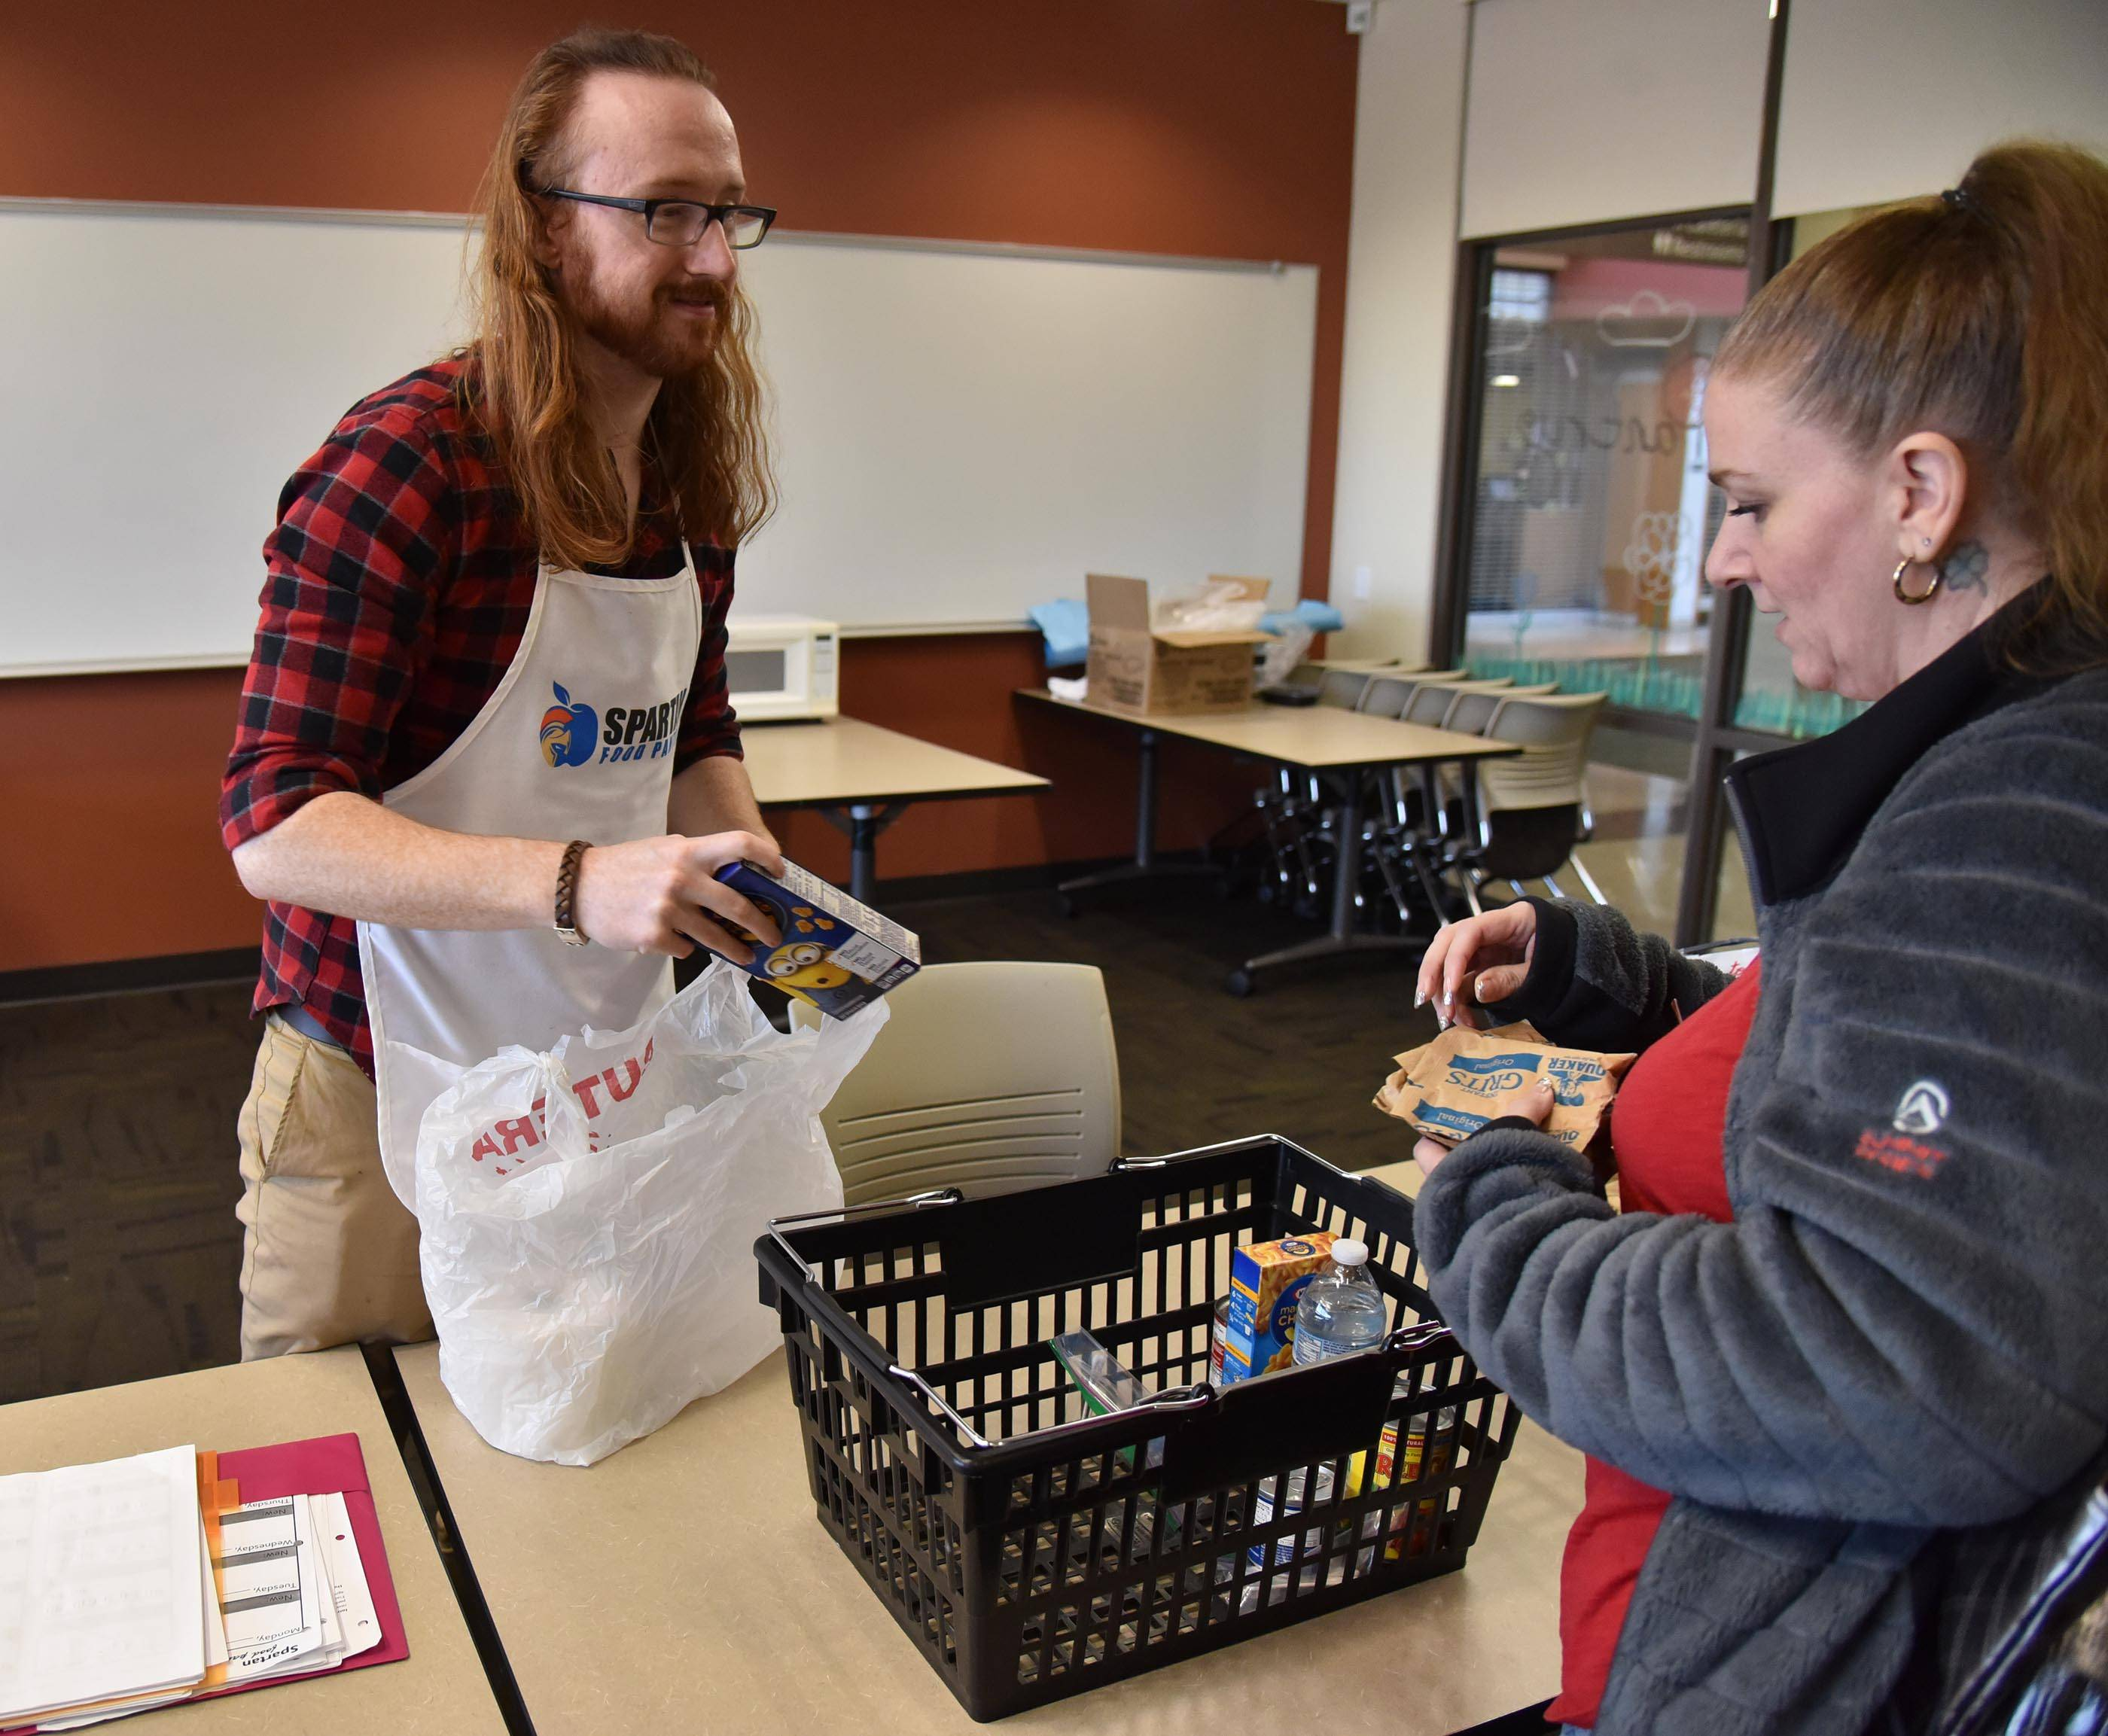 Andrew Pratt, co-officer of the Elgin Community College Spartan Food Pantry and a full-time student, helps ECC student Angela with her basket of goods. The pantry is one way suburban community colleges are trying to address food insecurity among students.